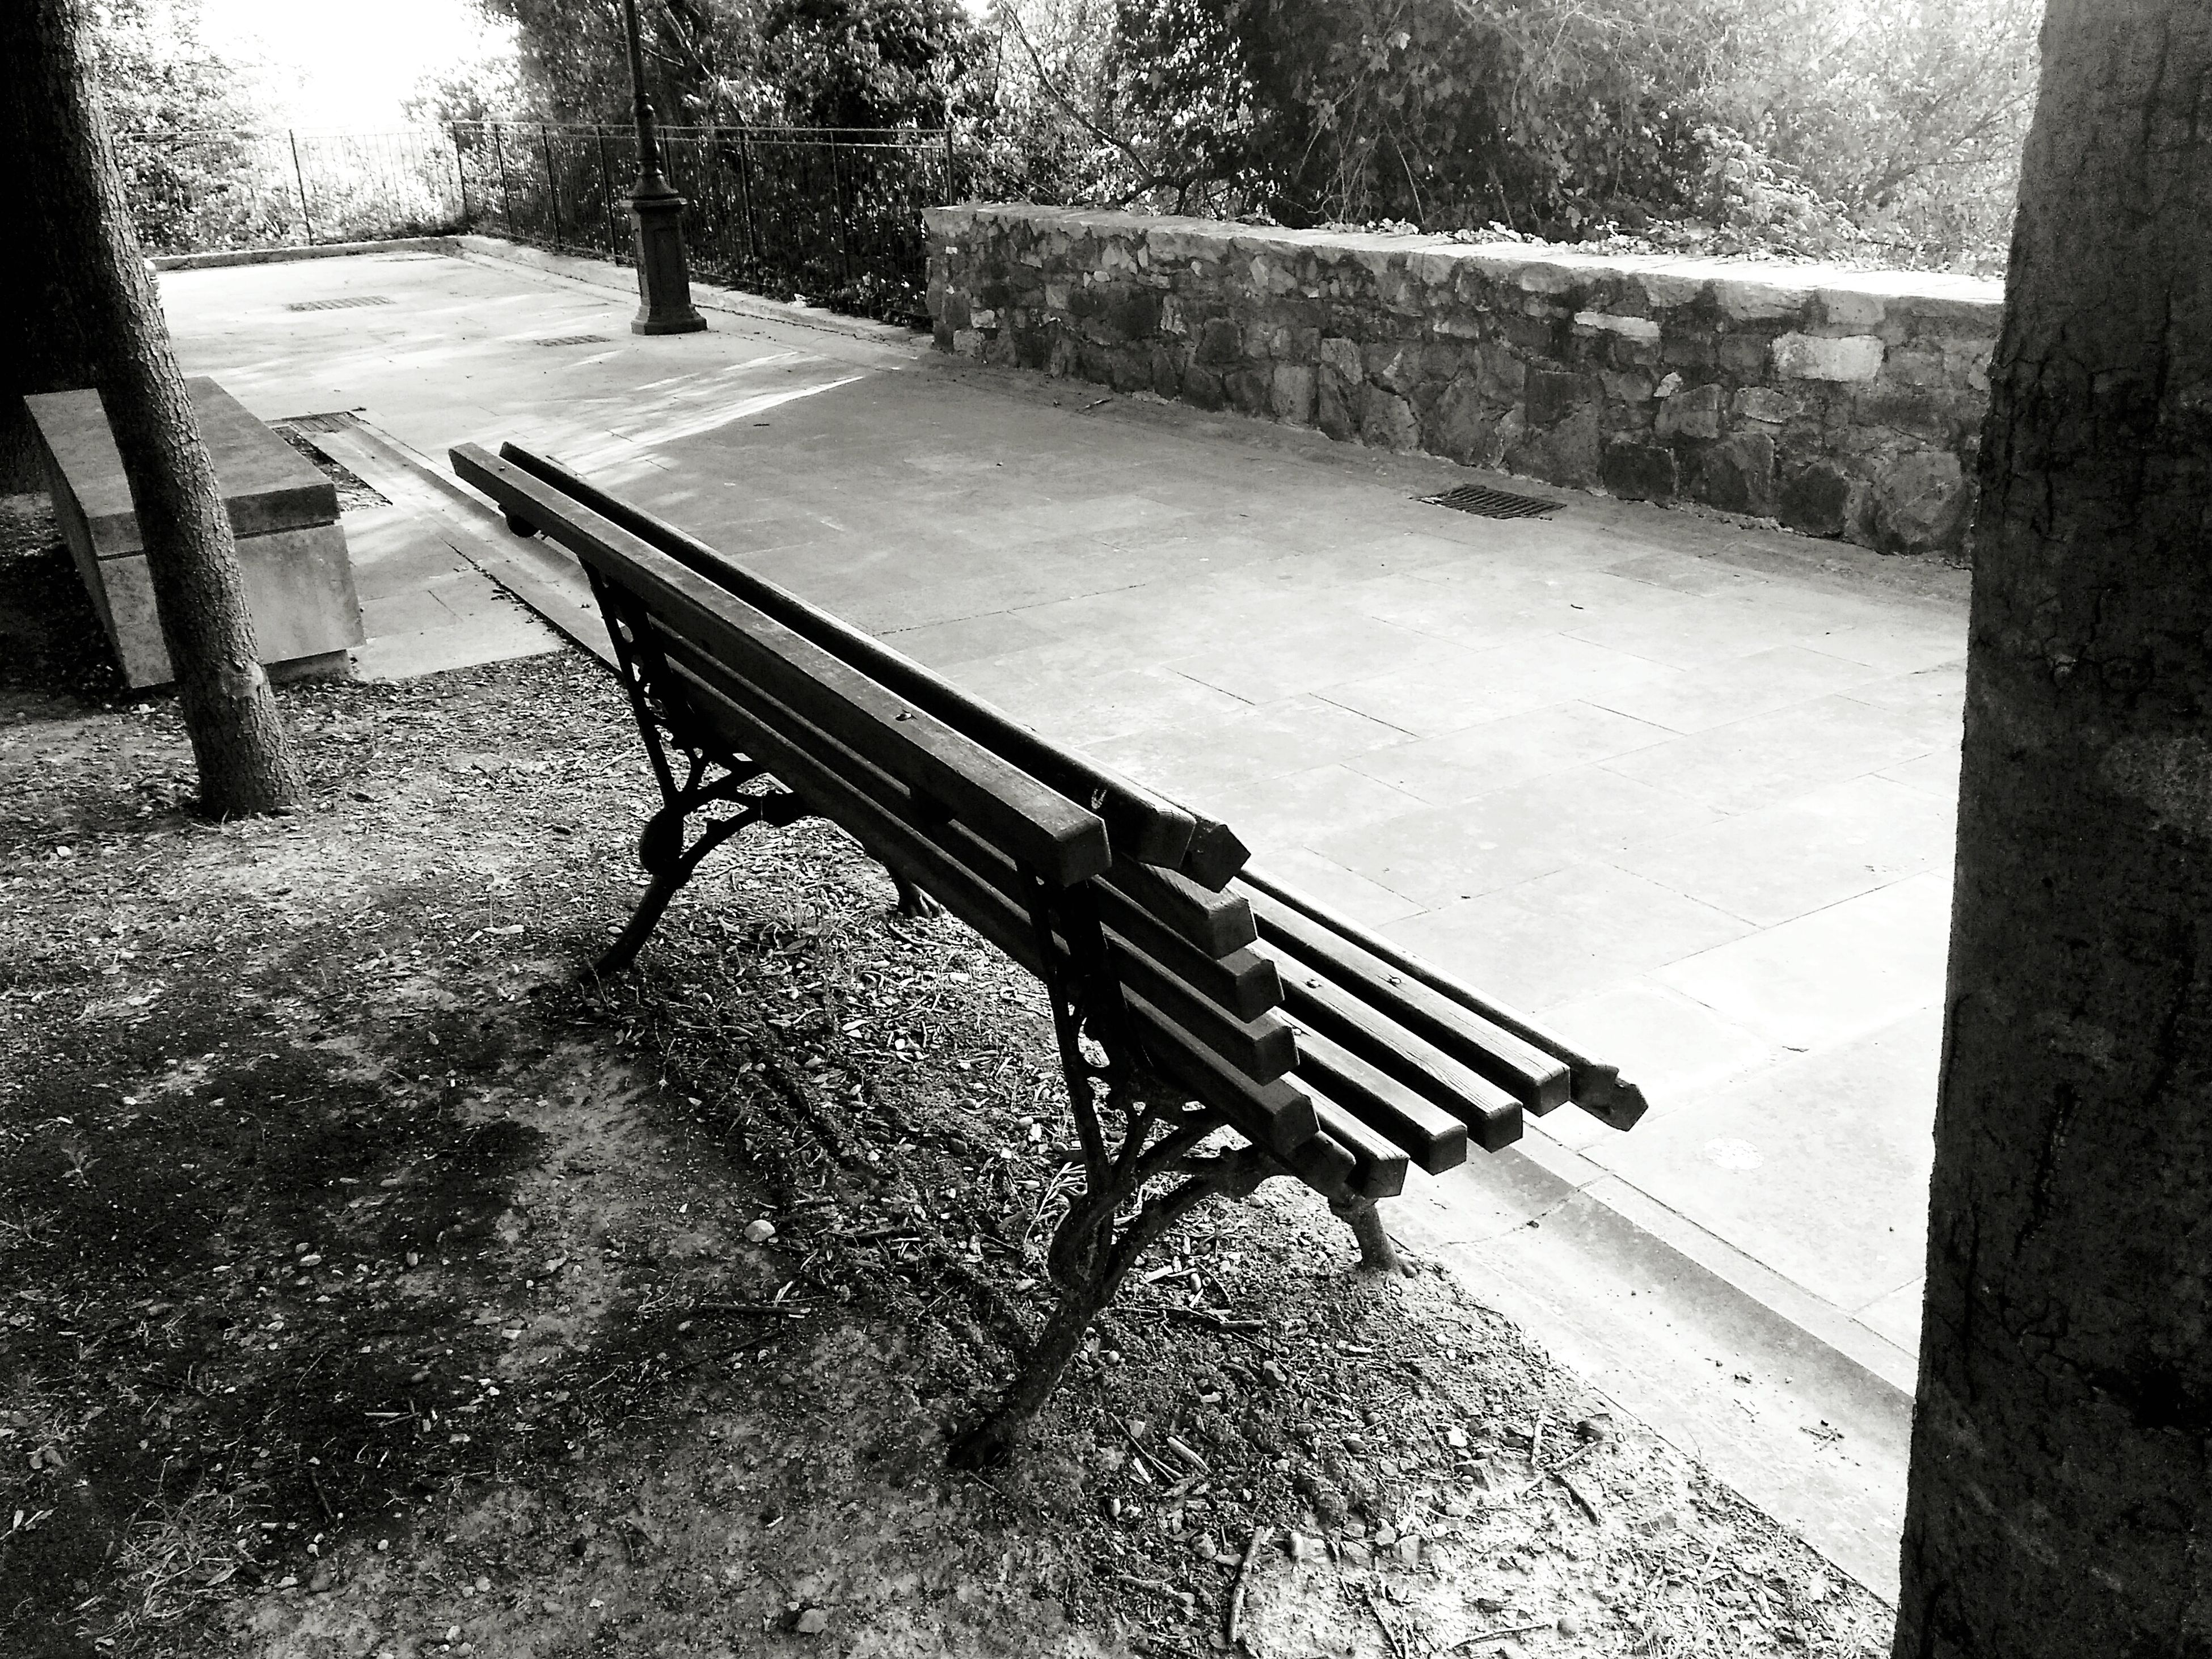 tree, shadow, sunlight, railing, bench, high angle view, built structure, park - man made space, steps, day, wood - material, footpath, outdoors, empty, park bench, absence, no people, metal, sidewalk, architecture